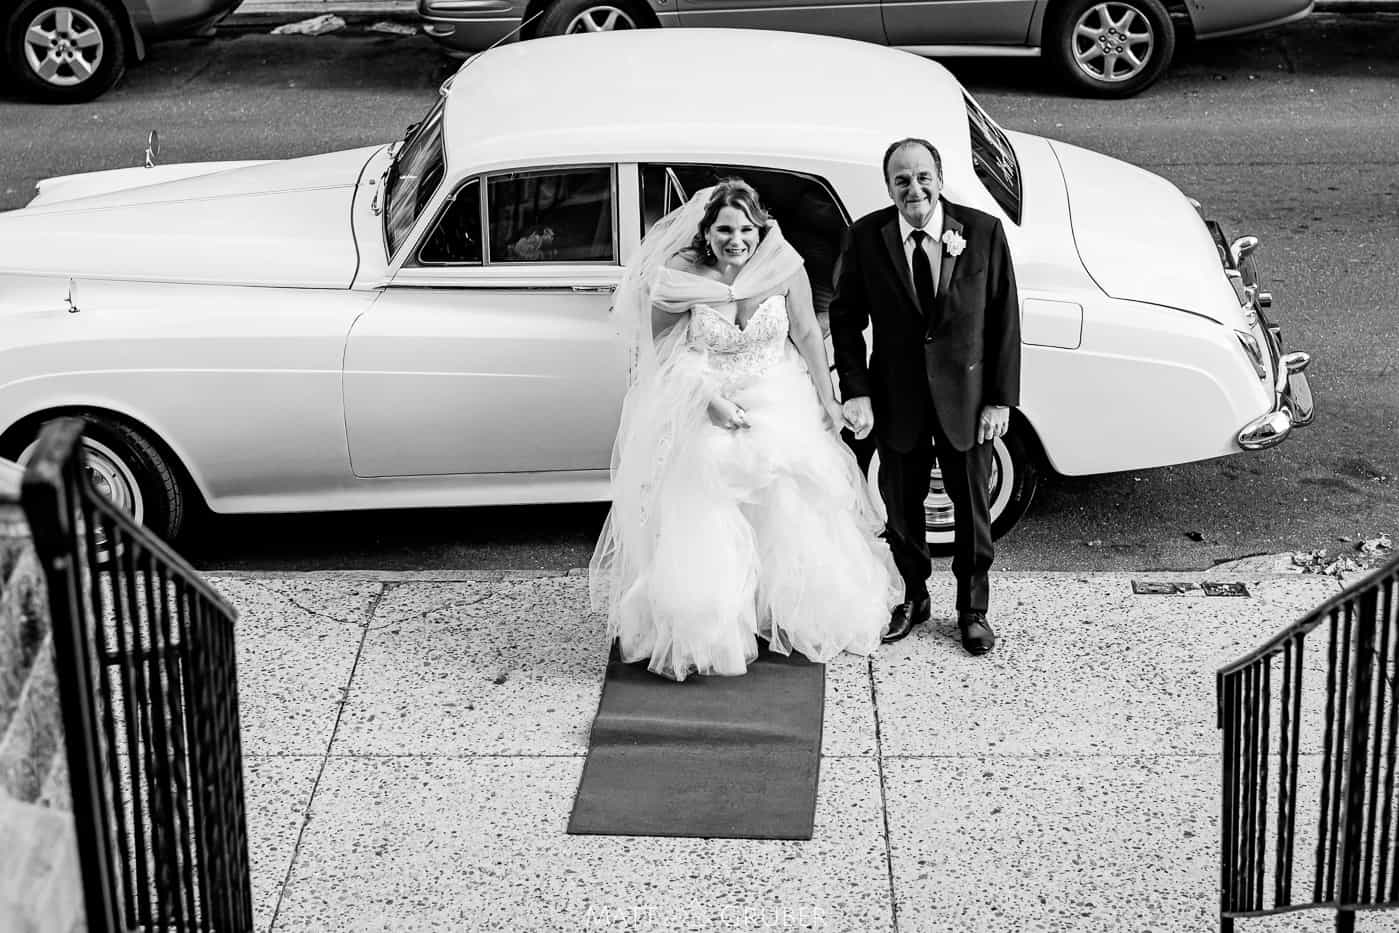 EPIPHANY OF OUR LORD South Philadelphia WEDDING